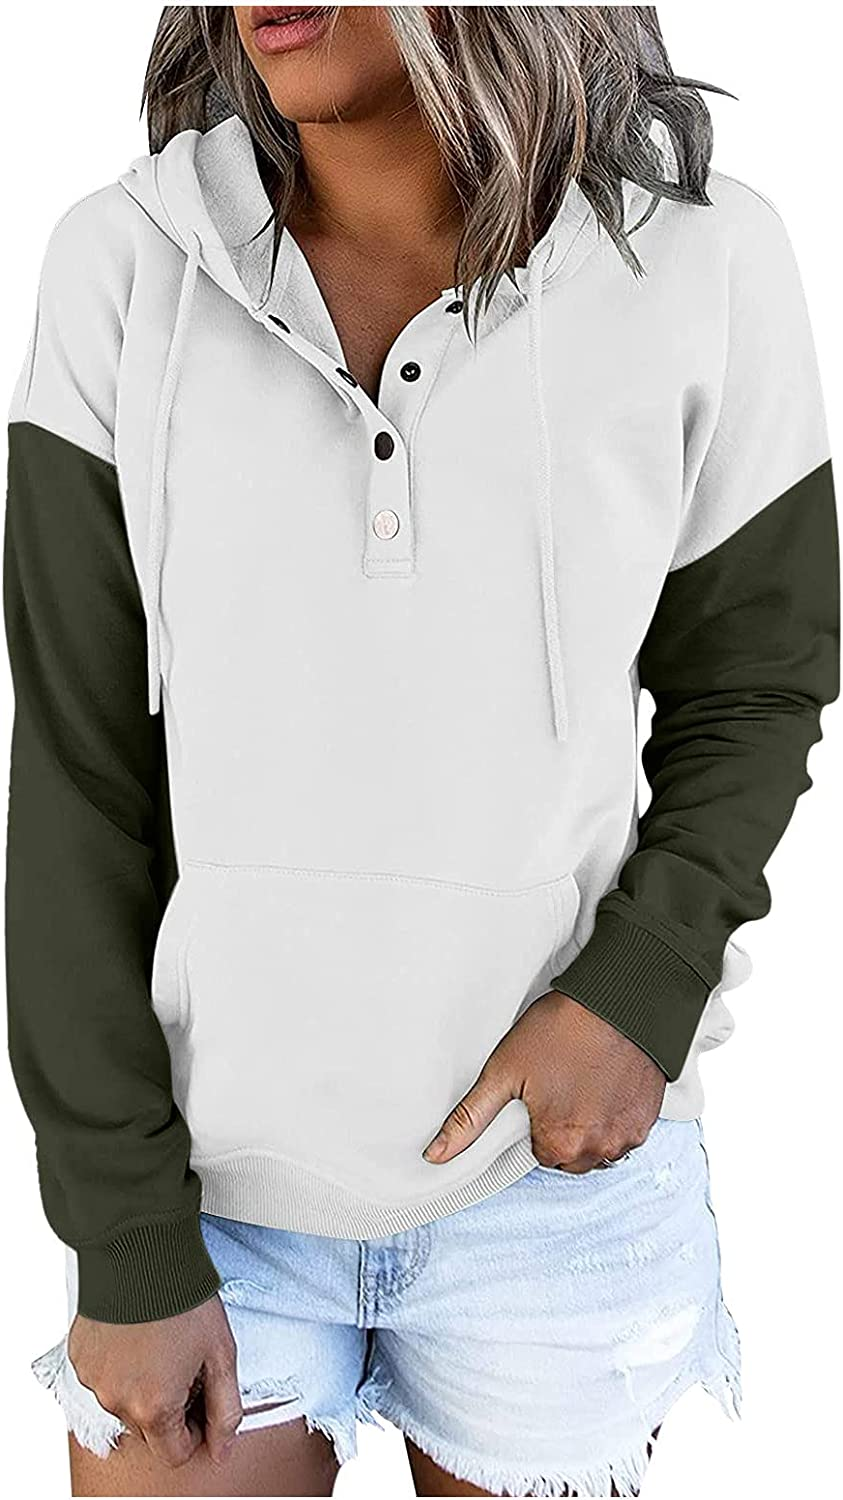 Drawstring Pullover Sweatshirt with Pocket Plus Our shop most popular Size excellence Women Butto